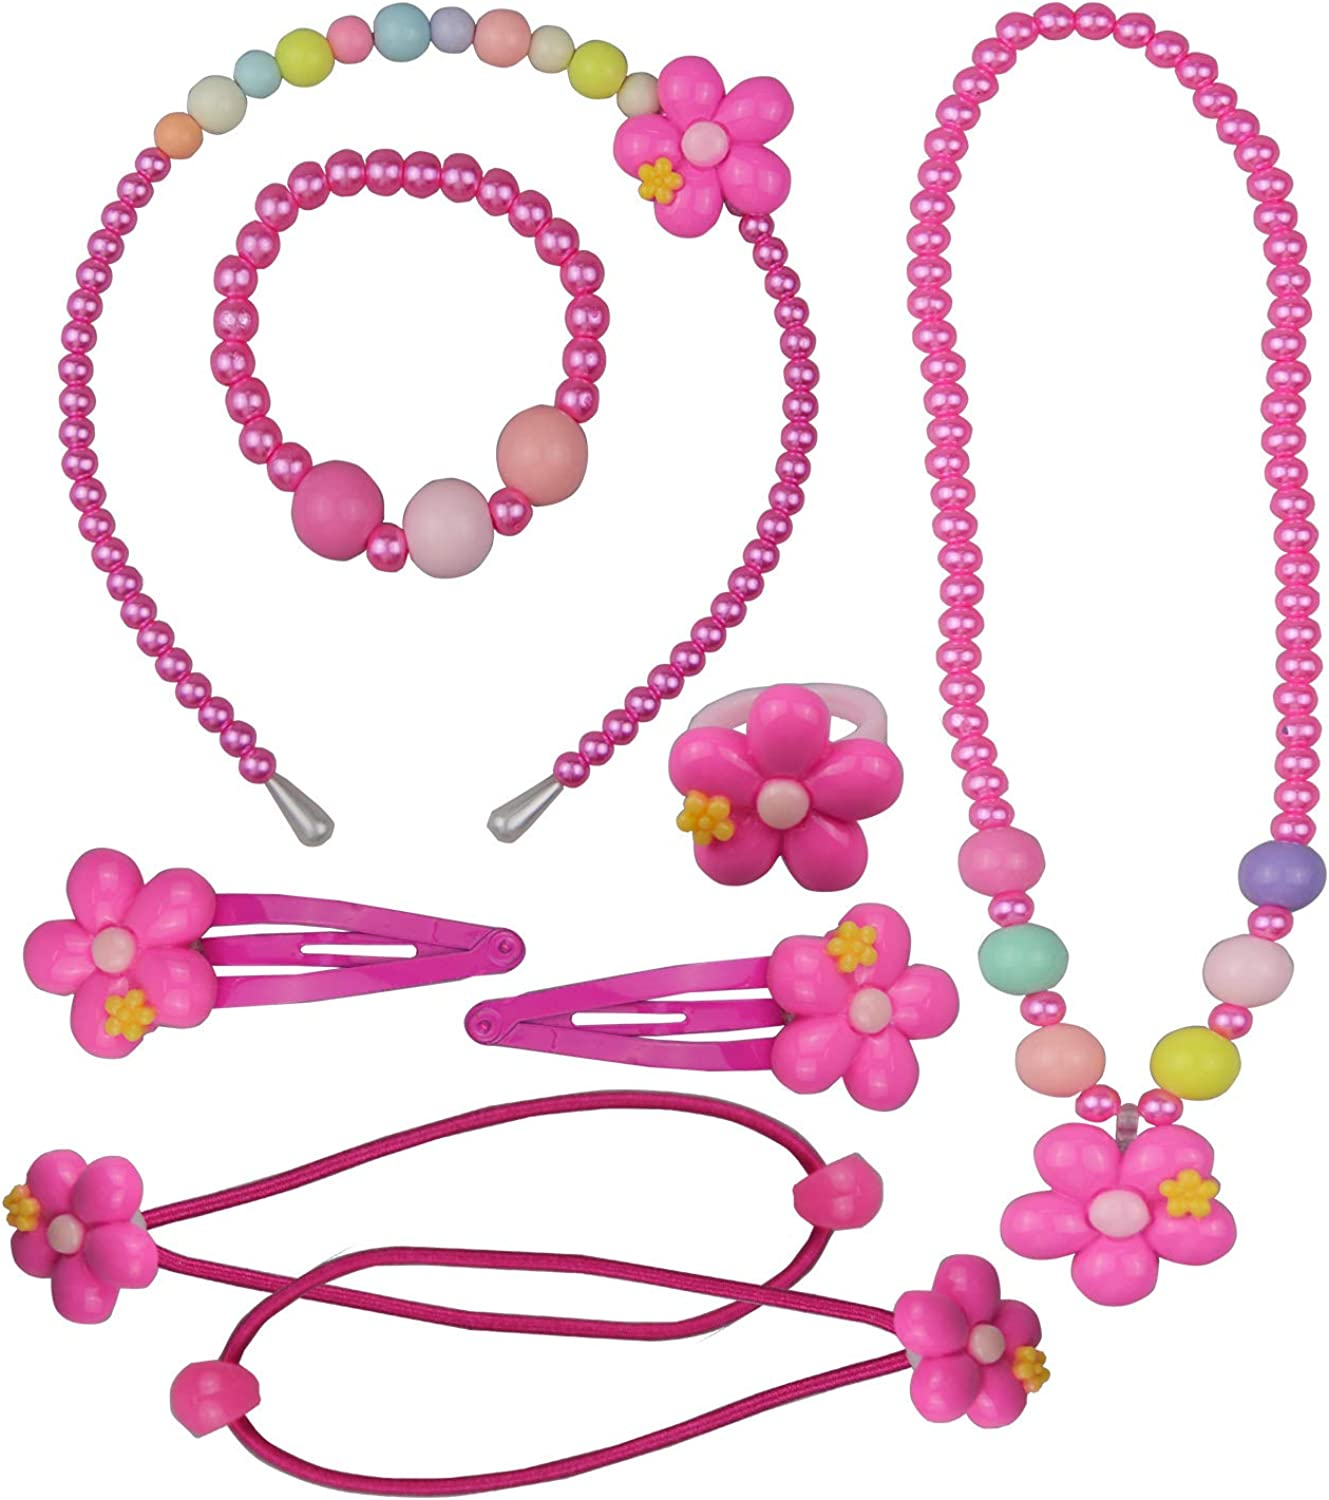 Kici Little Girls Jewelry Necklace Bracelet Ring Hair Clips Set Pink Flower for Children kids Party Play Pretend Dress Up